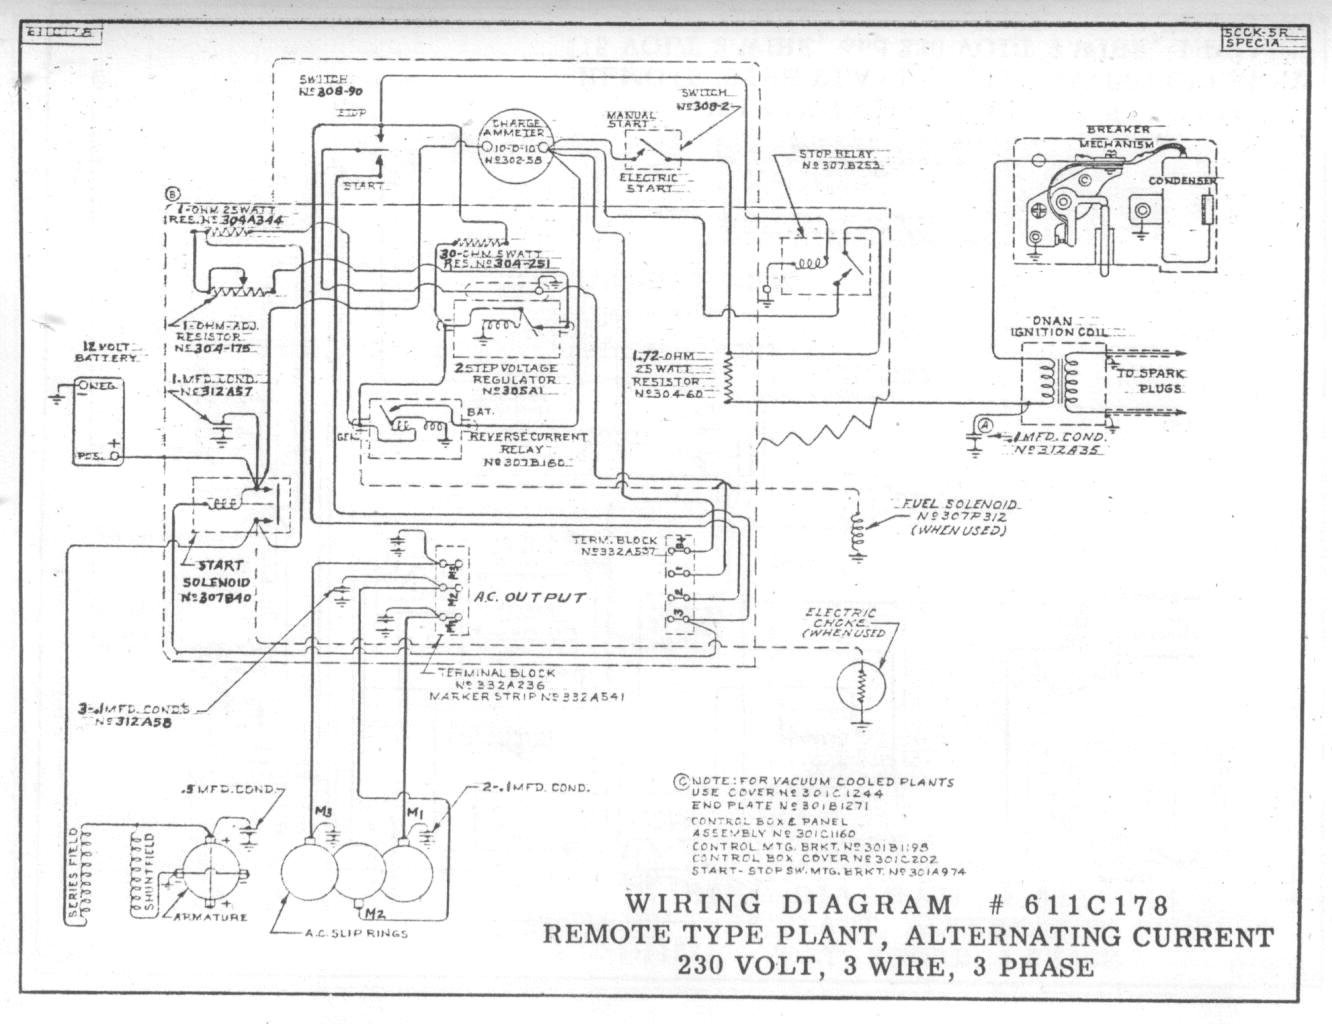 onan 5000 generator wiring diagram anyone know anything about this generator? - page 3 - smokstak